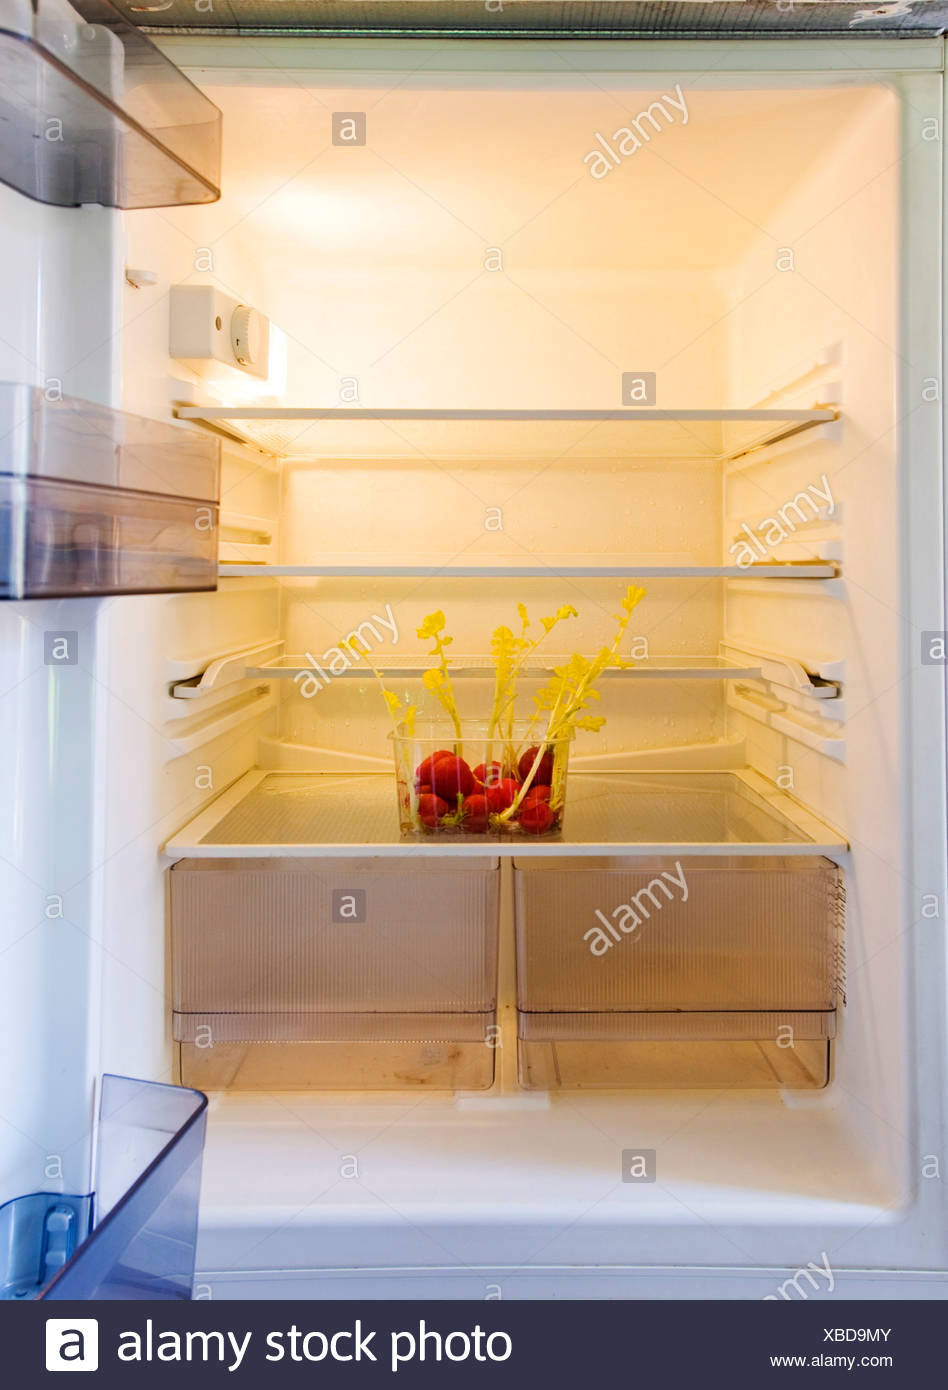 Empty fridge with radishes in a plastic box, yellow germ buds already sprouting - Stock Image